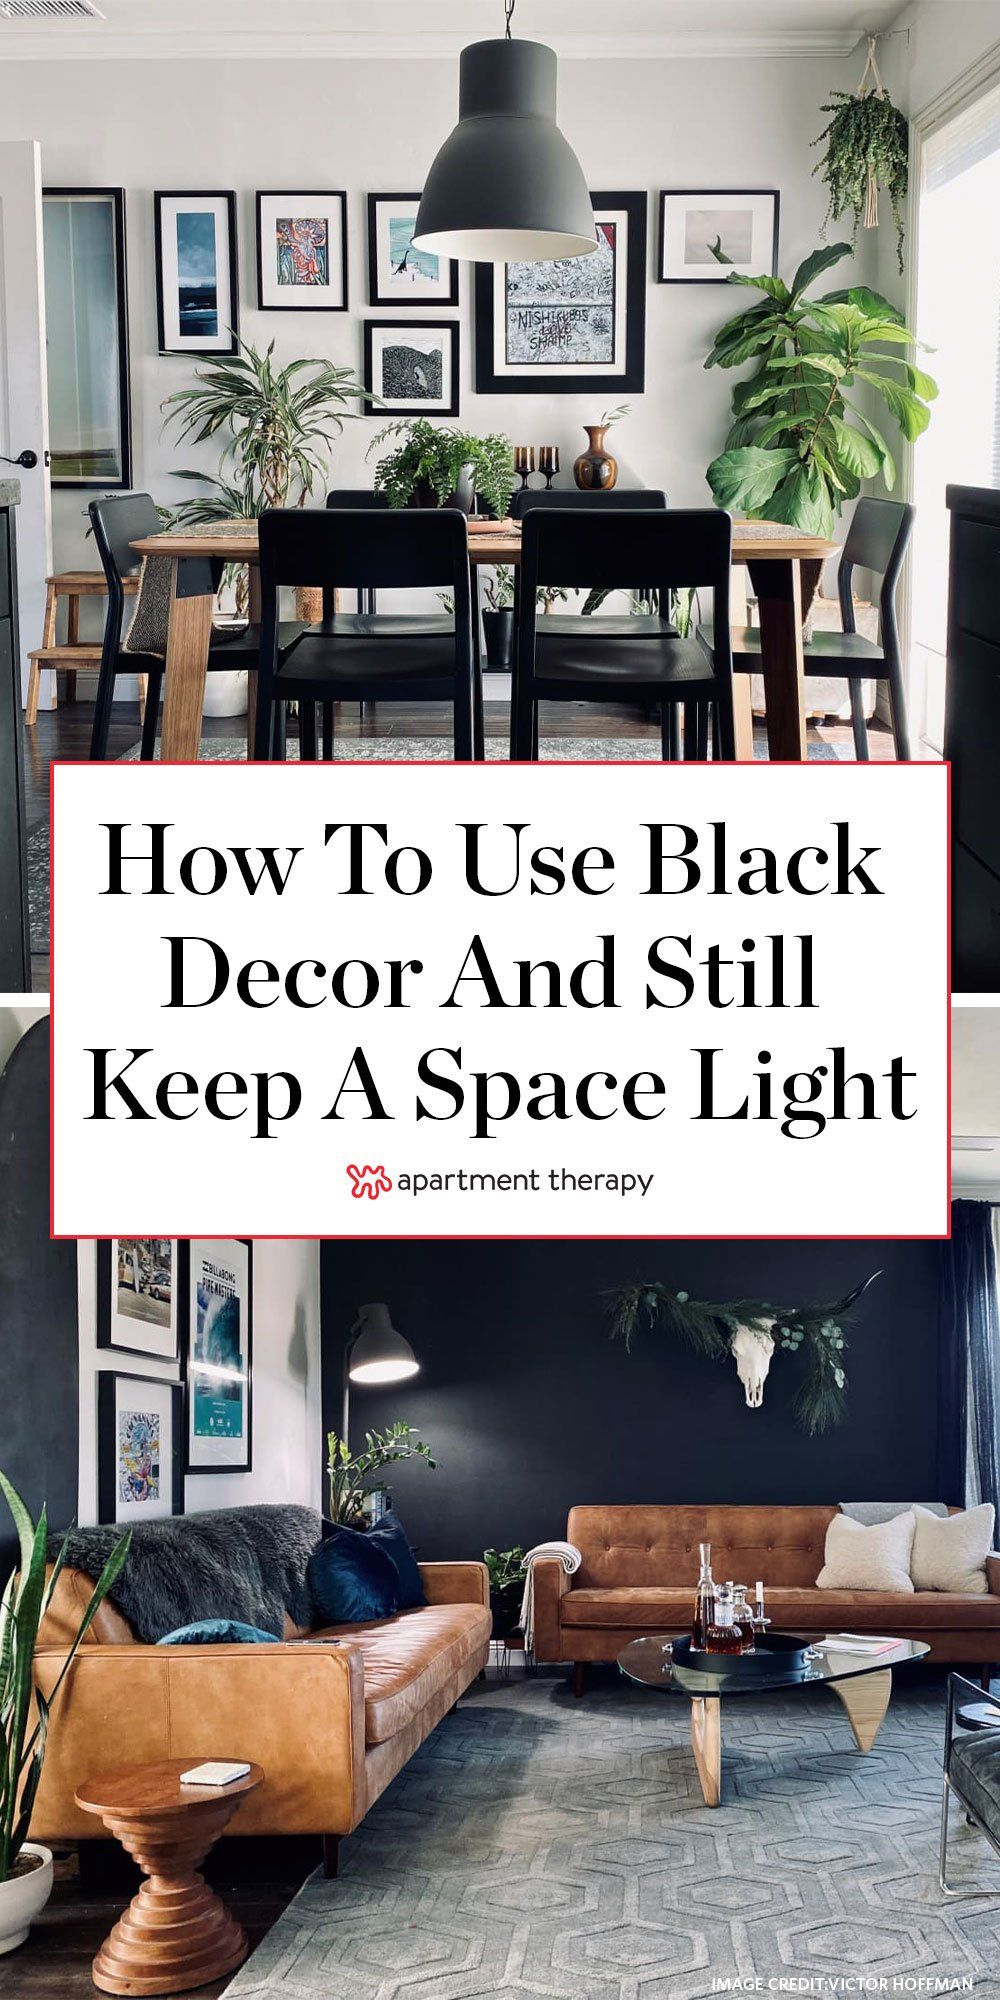 This small bungalow shows how to use a lot of black decor, but still keep a space light. #blackpaint #blackdecor #blackaccents #bolddecor #scandidecor #scandiindustrial #industrialdecor #scandinaviandecor #livingroomideas #paintideas #darkpaintcolors